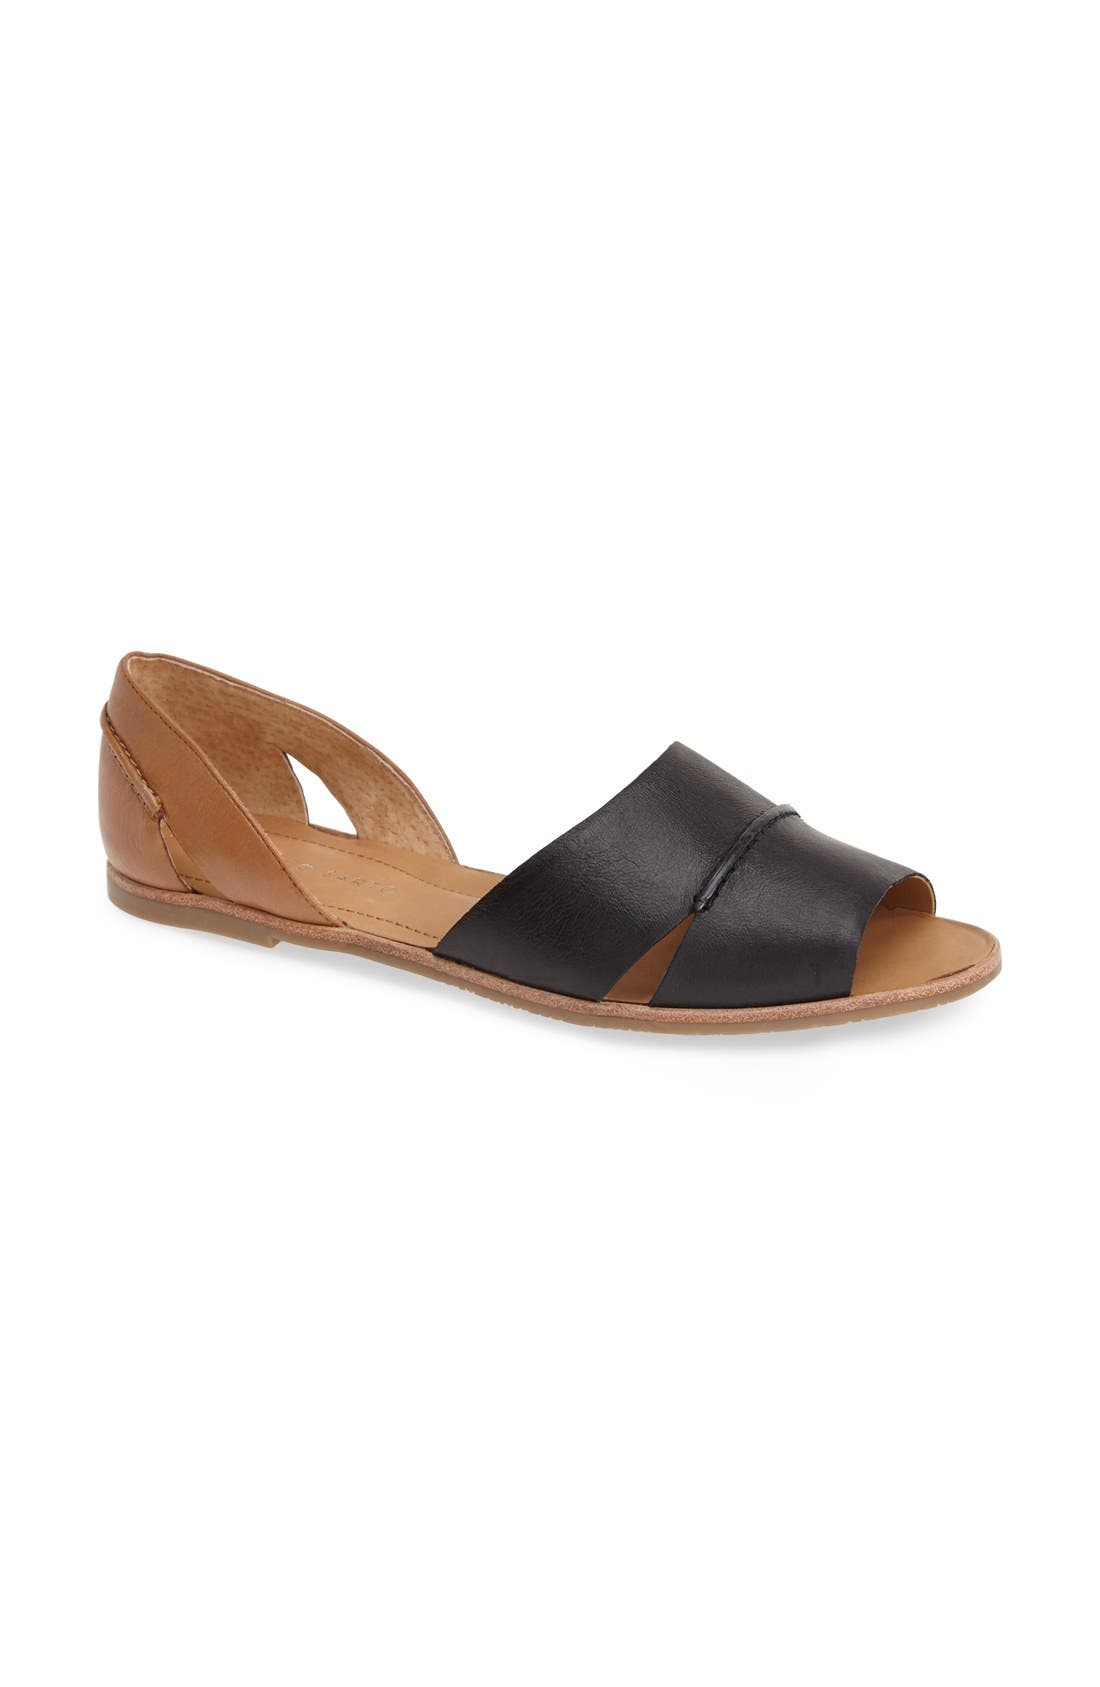 'Vivace' Leather d'Orsay Flat, Main, color, 002